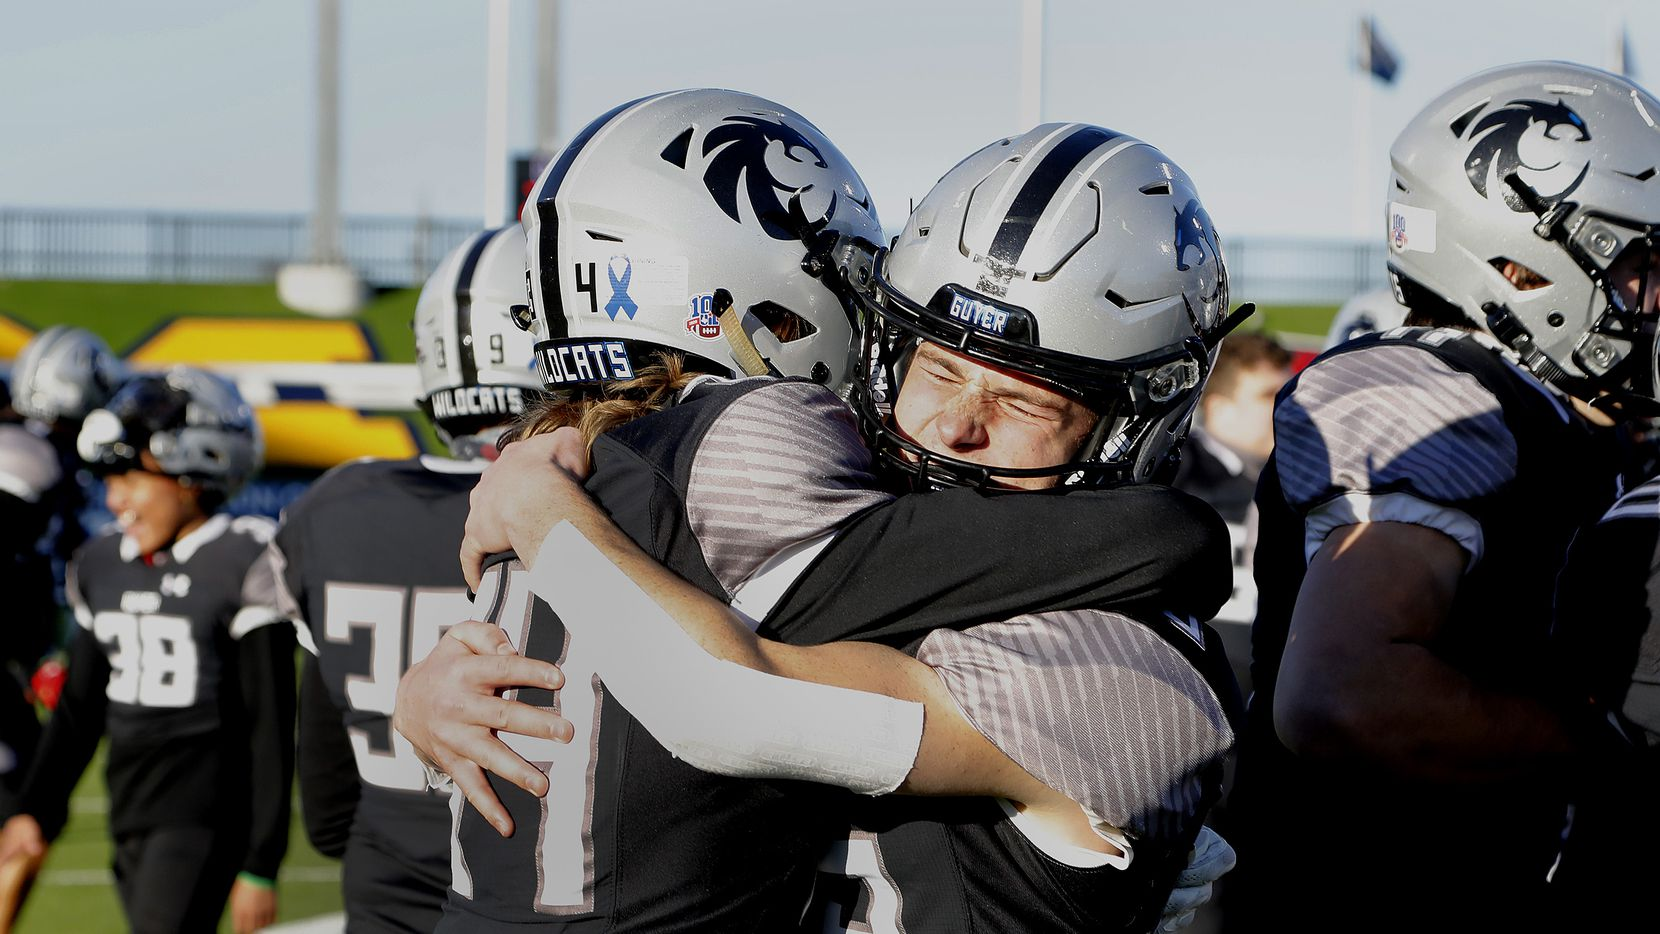 Denton Guyer High School wide receiver Bryson Riggs (34) embraces Denton Guyer High School wide receiver Jake Ausec (25) after a three overtime victory as Prosper High School played Denton Guyer High School in the Class 6A Division II, Region I final at McKinney ISD Stadium in McKinney on Saturday, January 2, 2021.